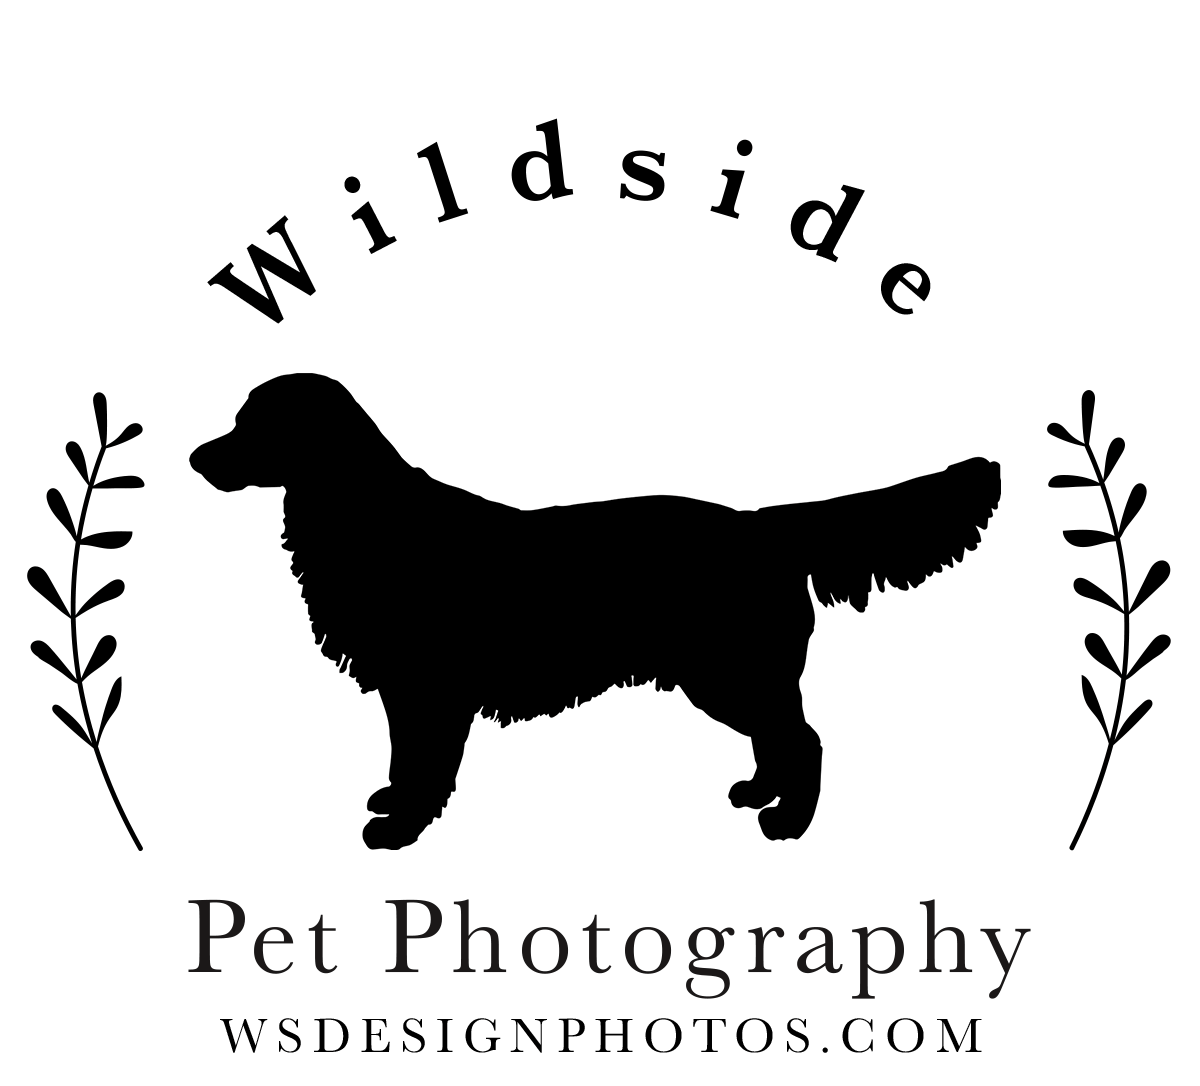 Wildside Design & Pet Photography